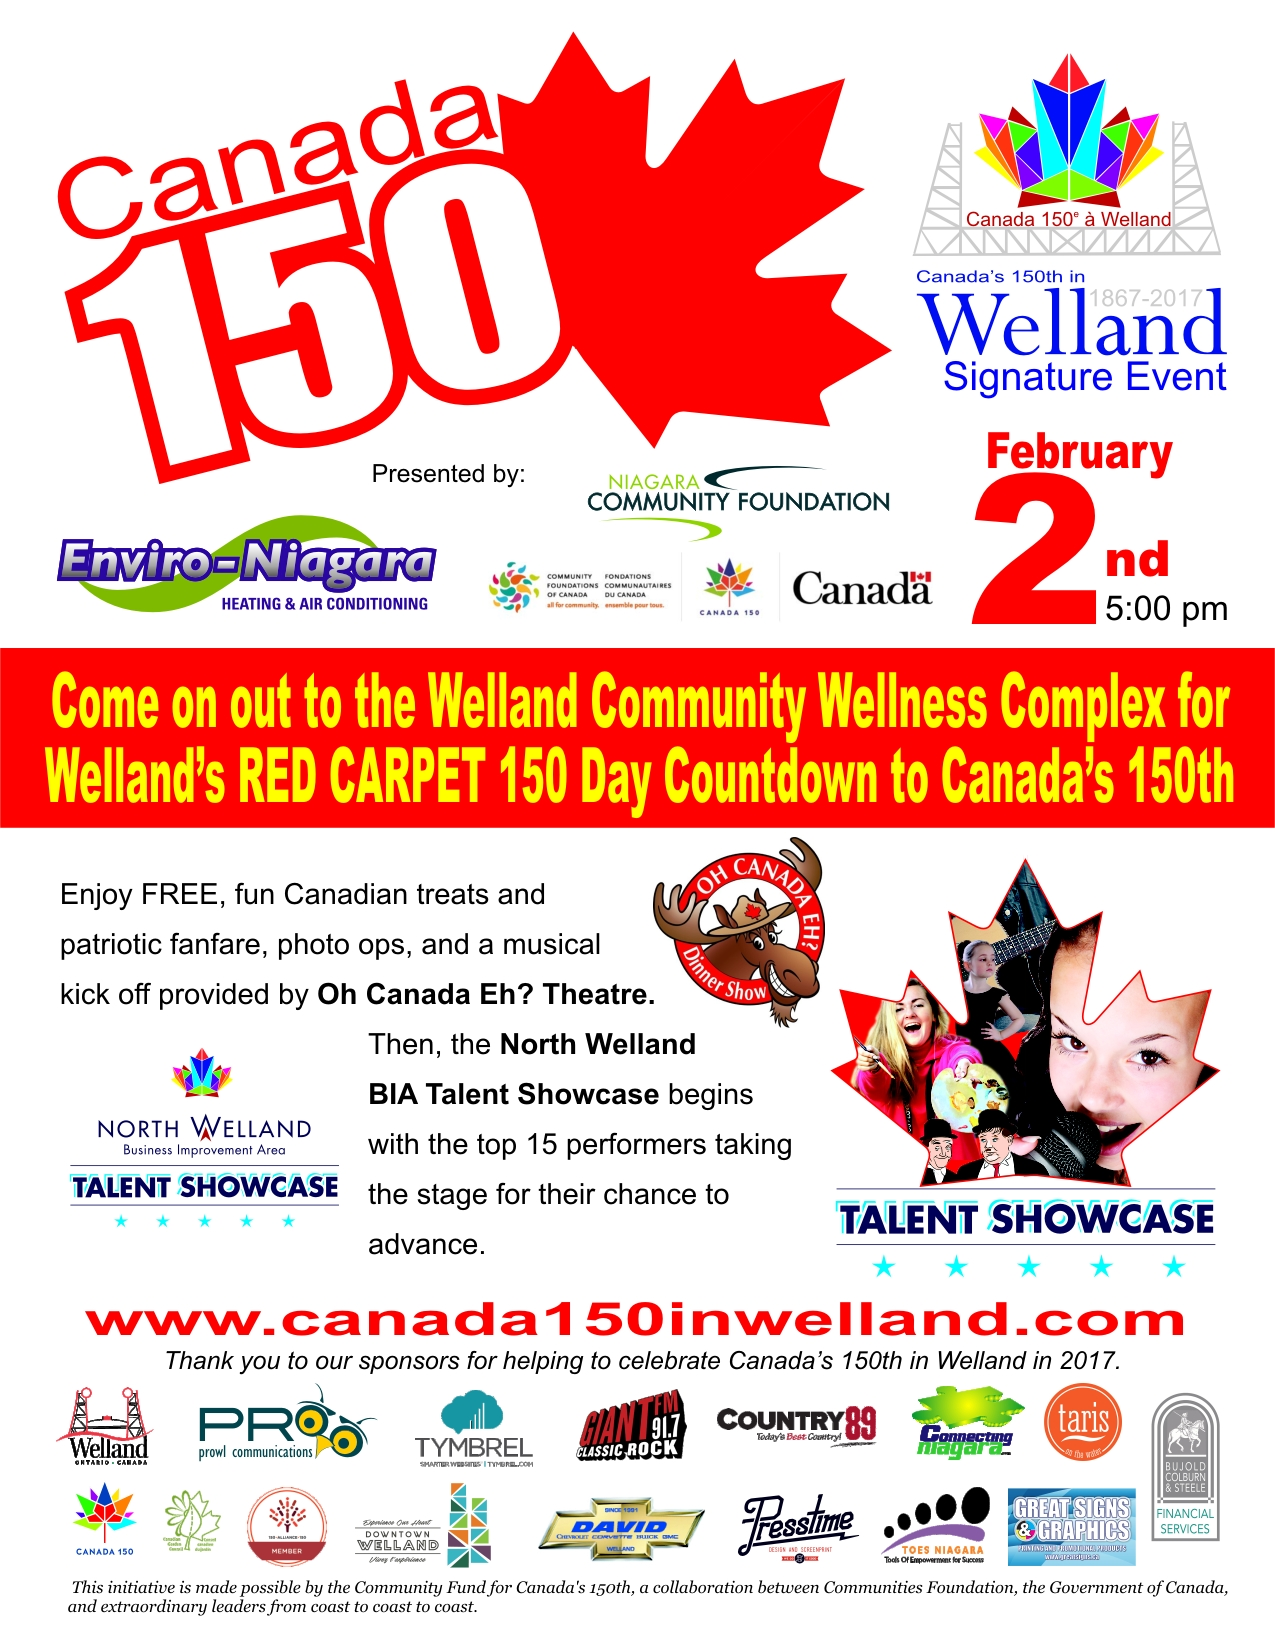 canada 150 in welland launch poster